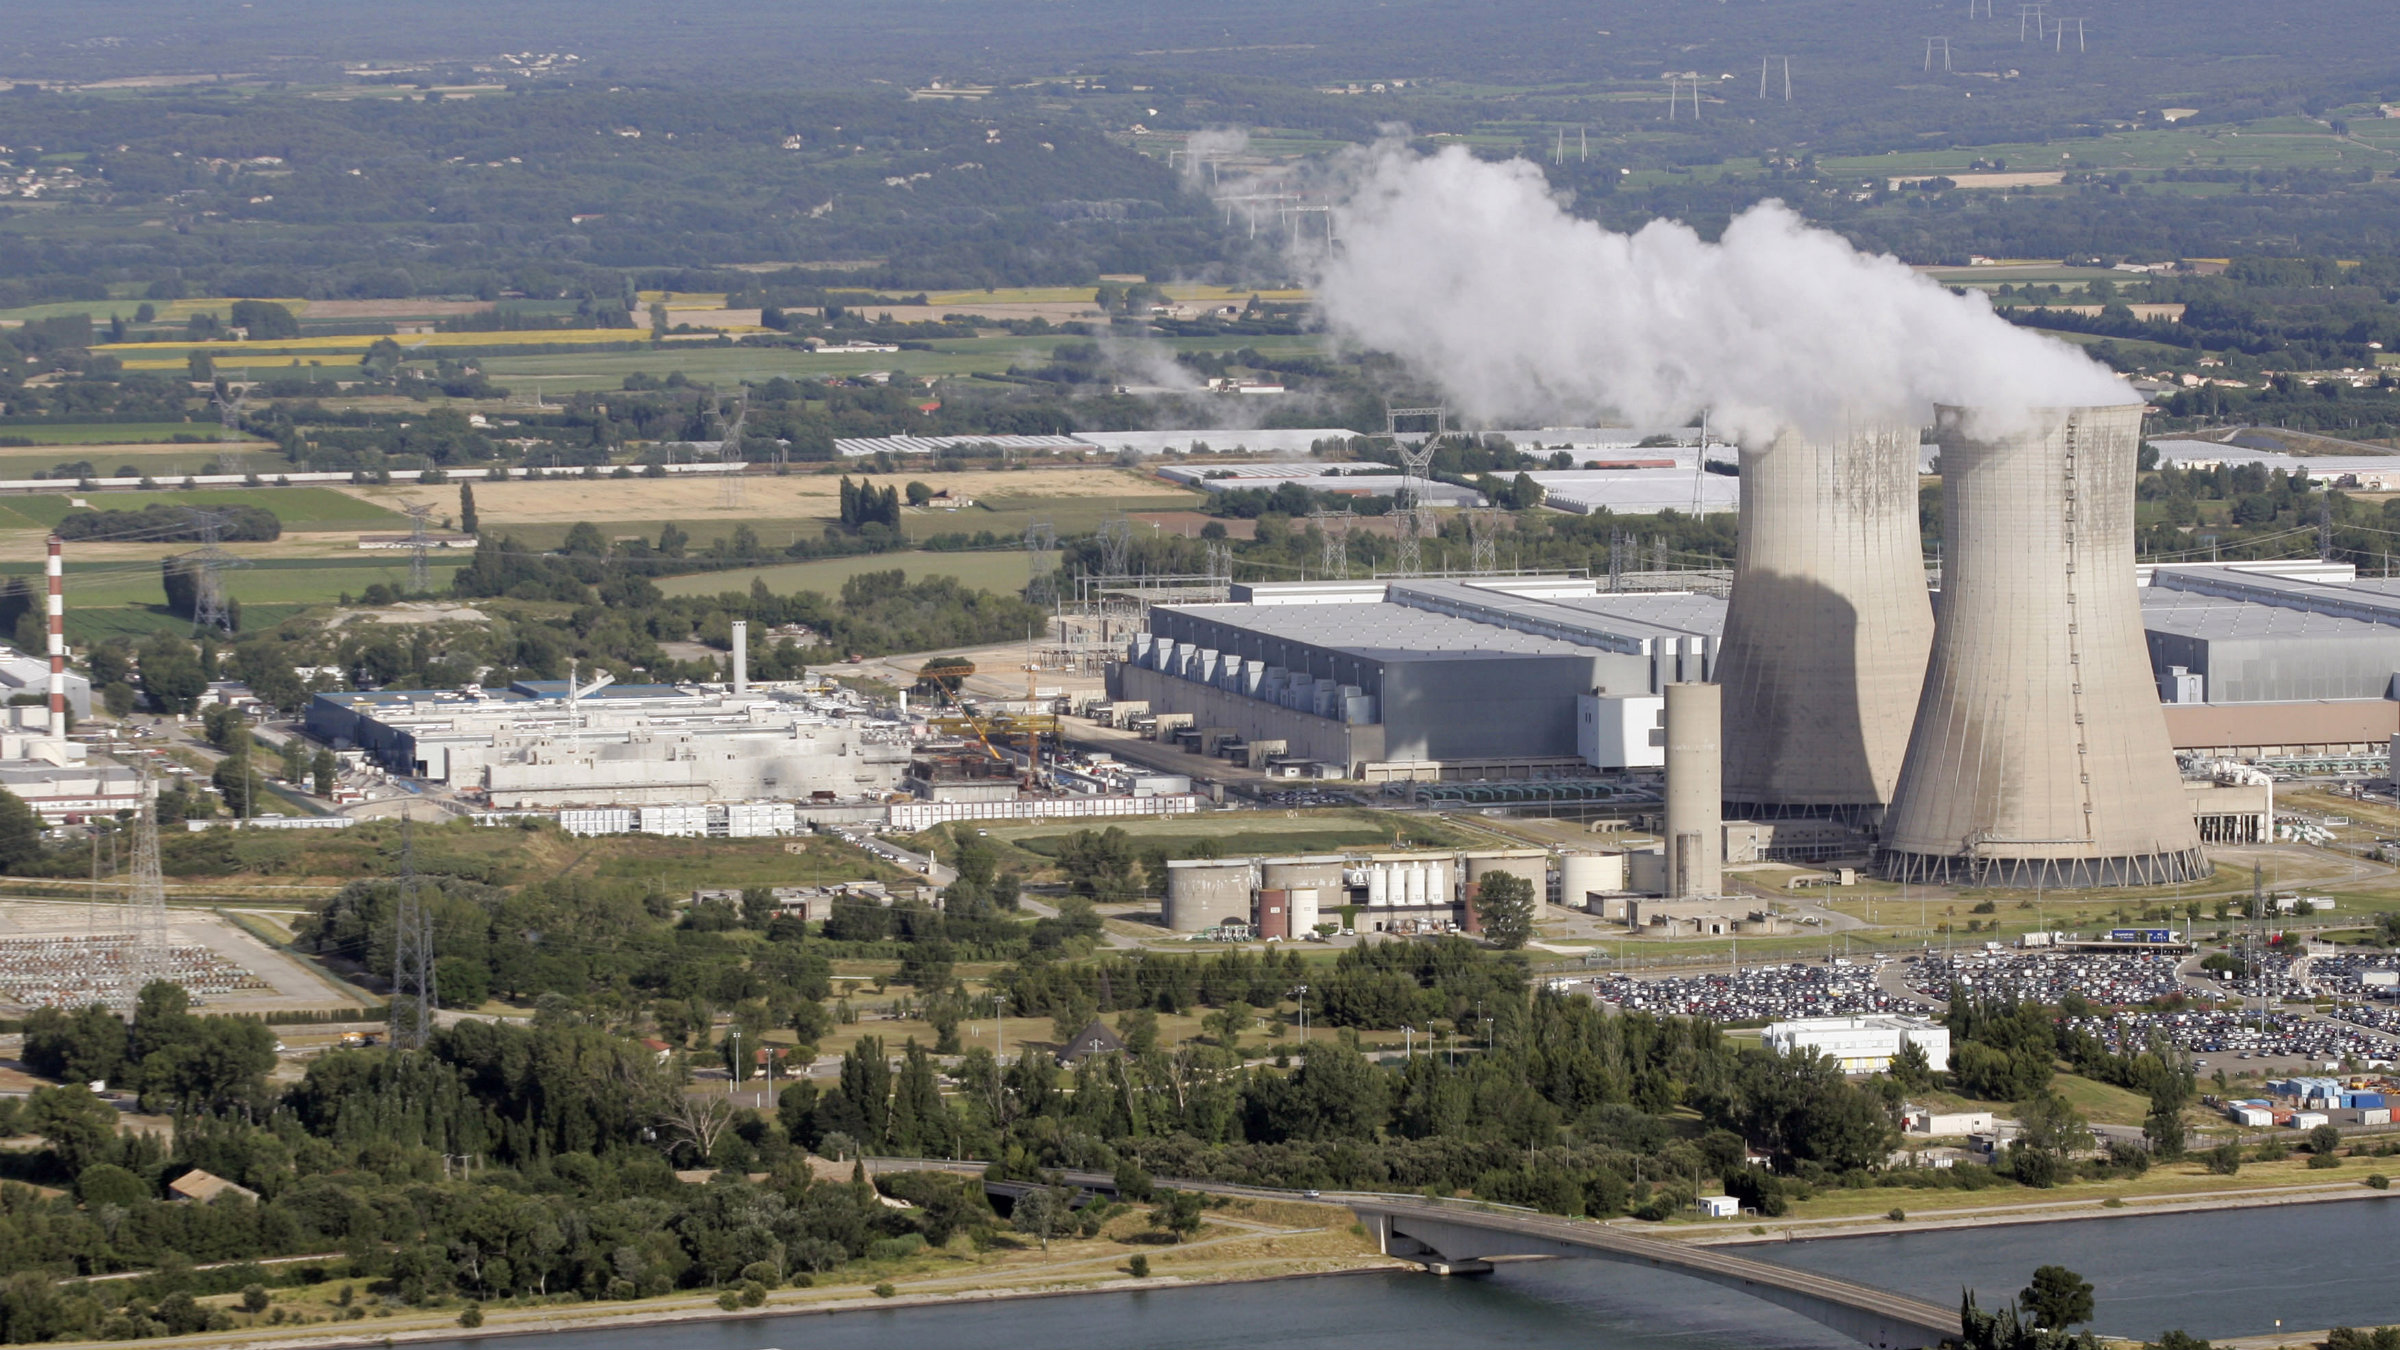 A general view shows the French nuclear Tricastin site in southeastern France.